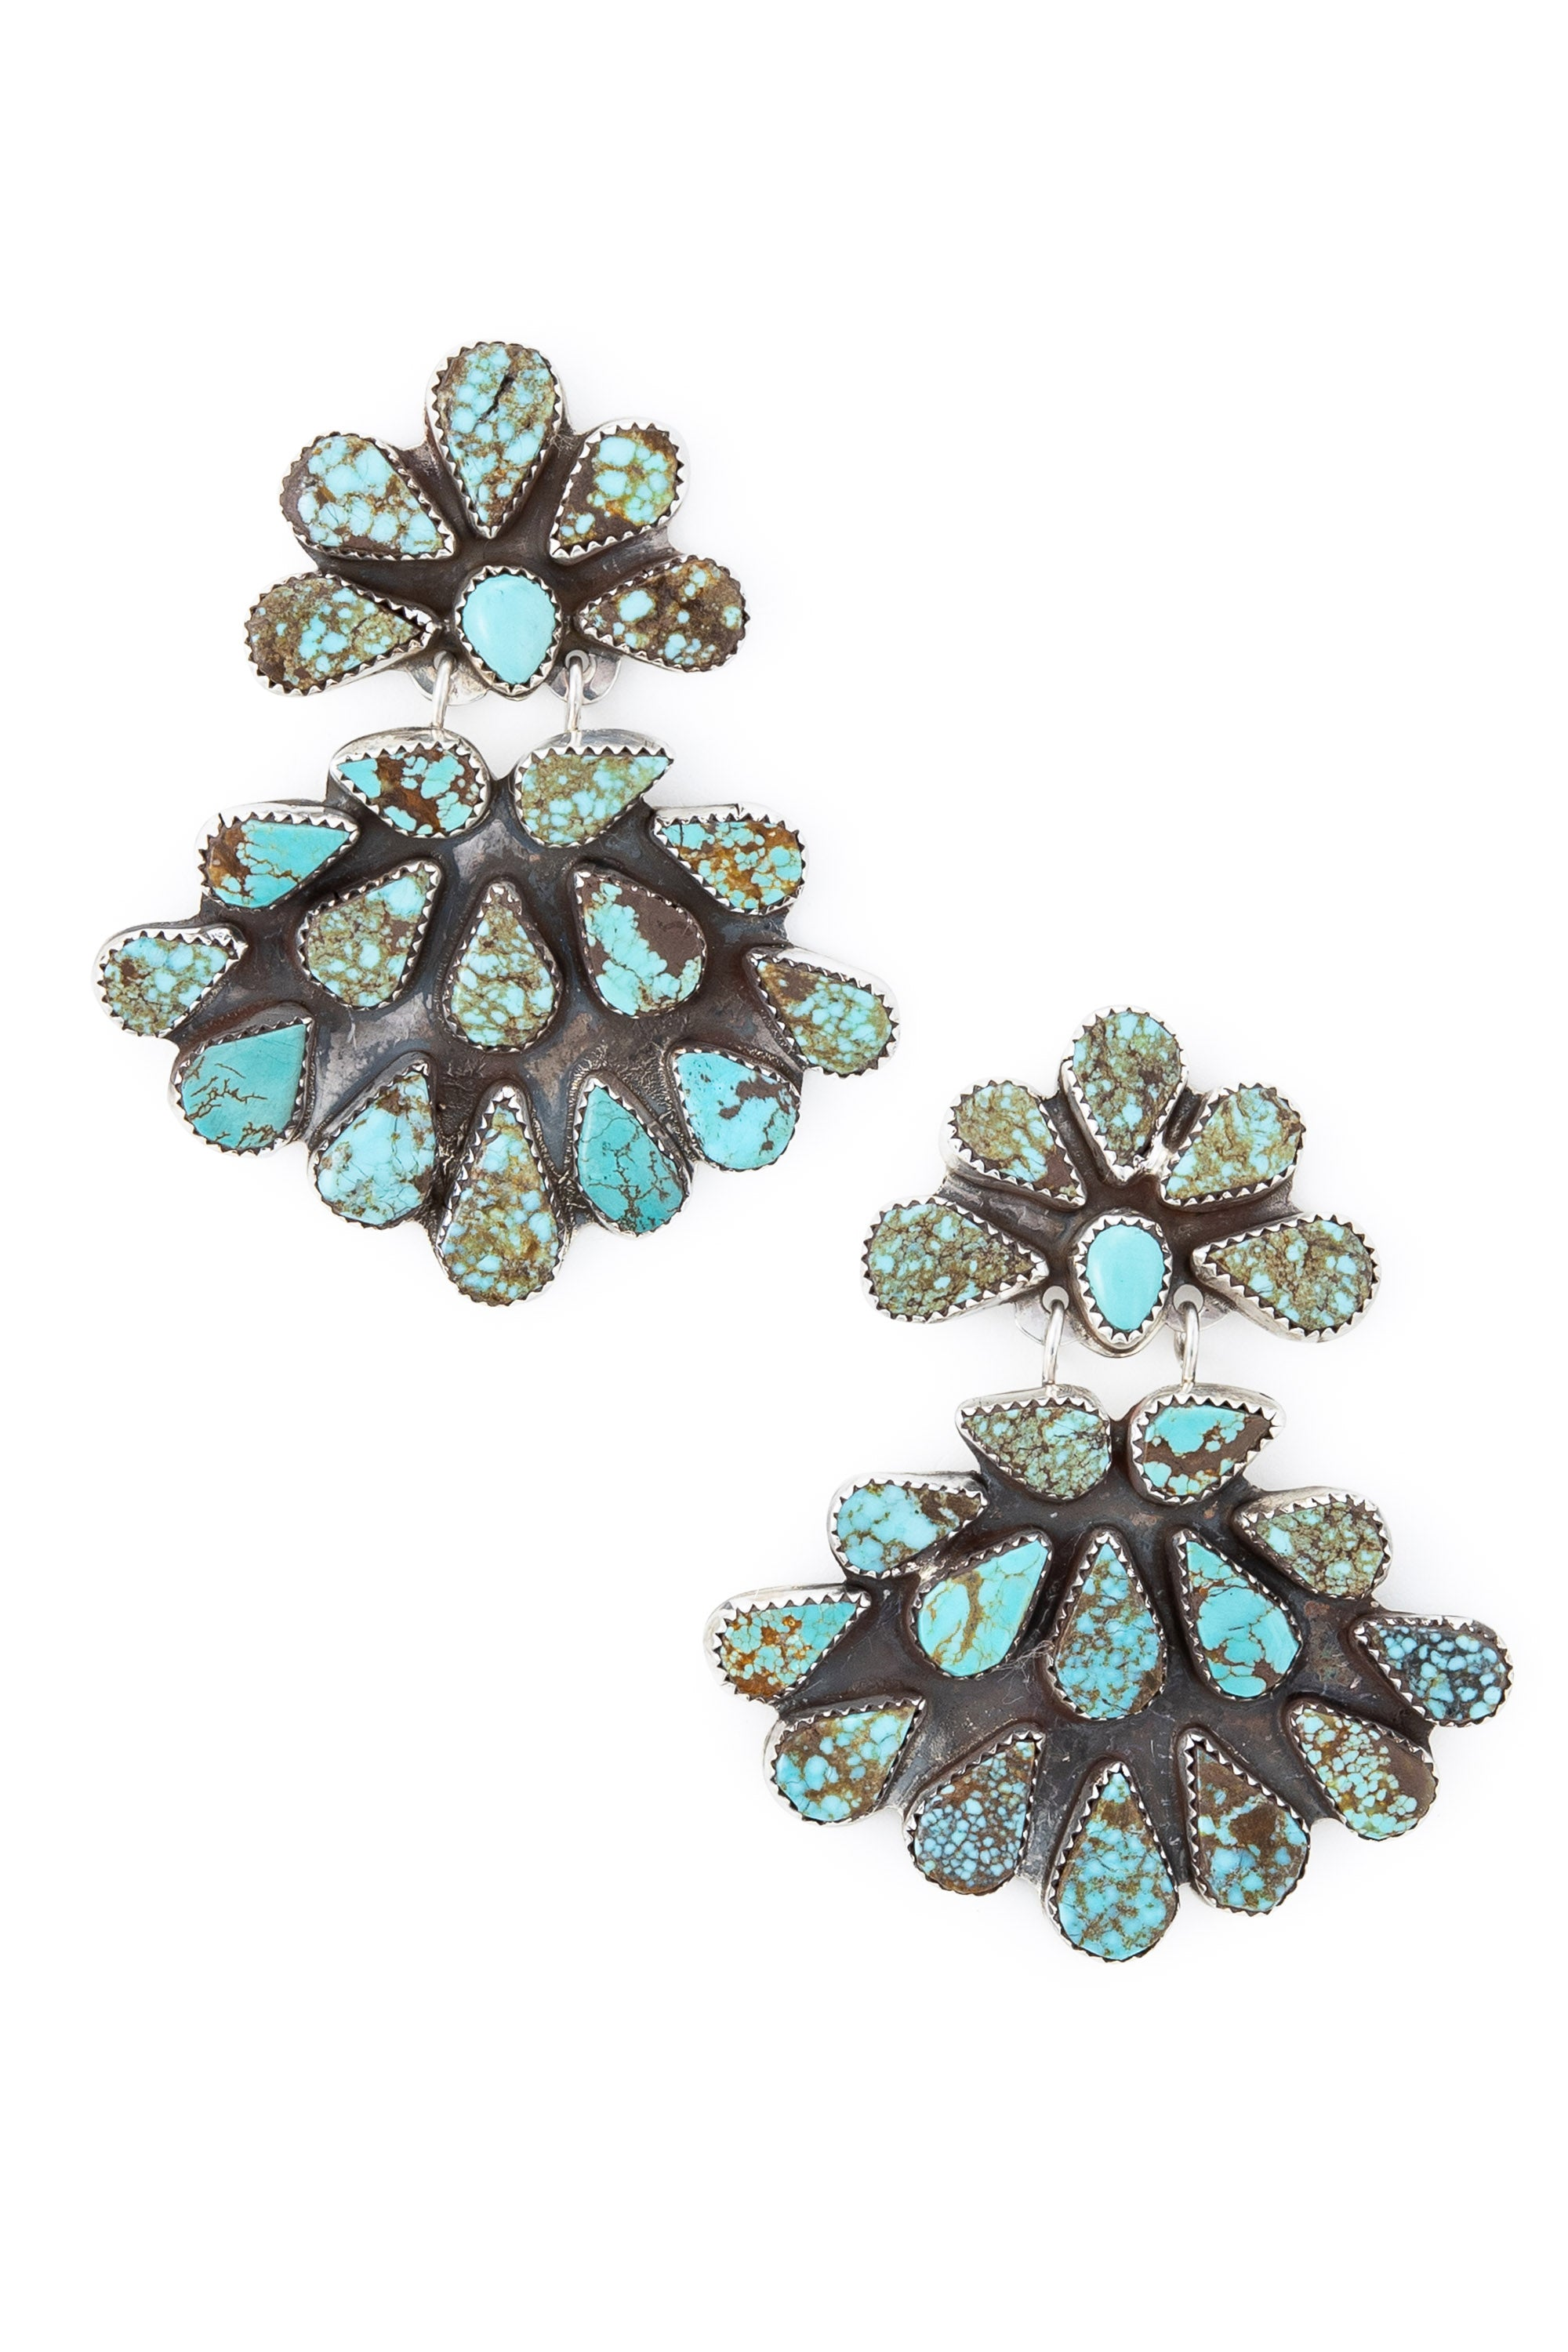 Earrings, Chandelier, Turquoise,  Oscar Betz, Hallmark, Vintage, 556